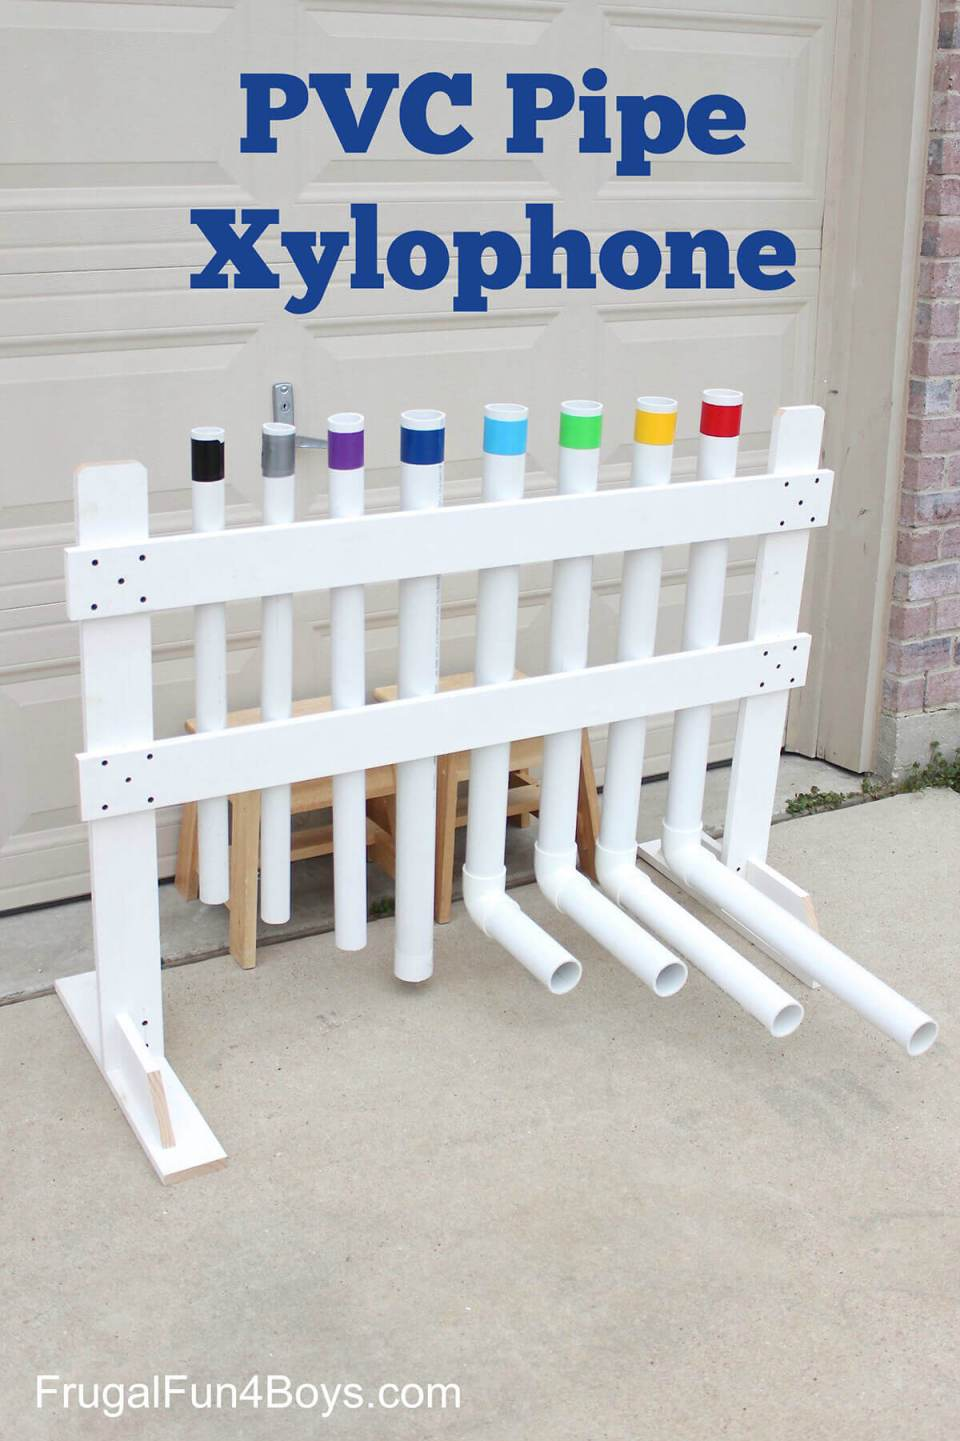 DIY Pipe Xylophone for Young Musicians